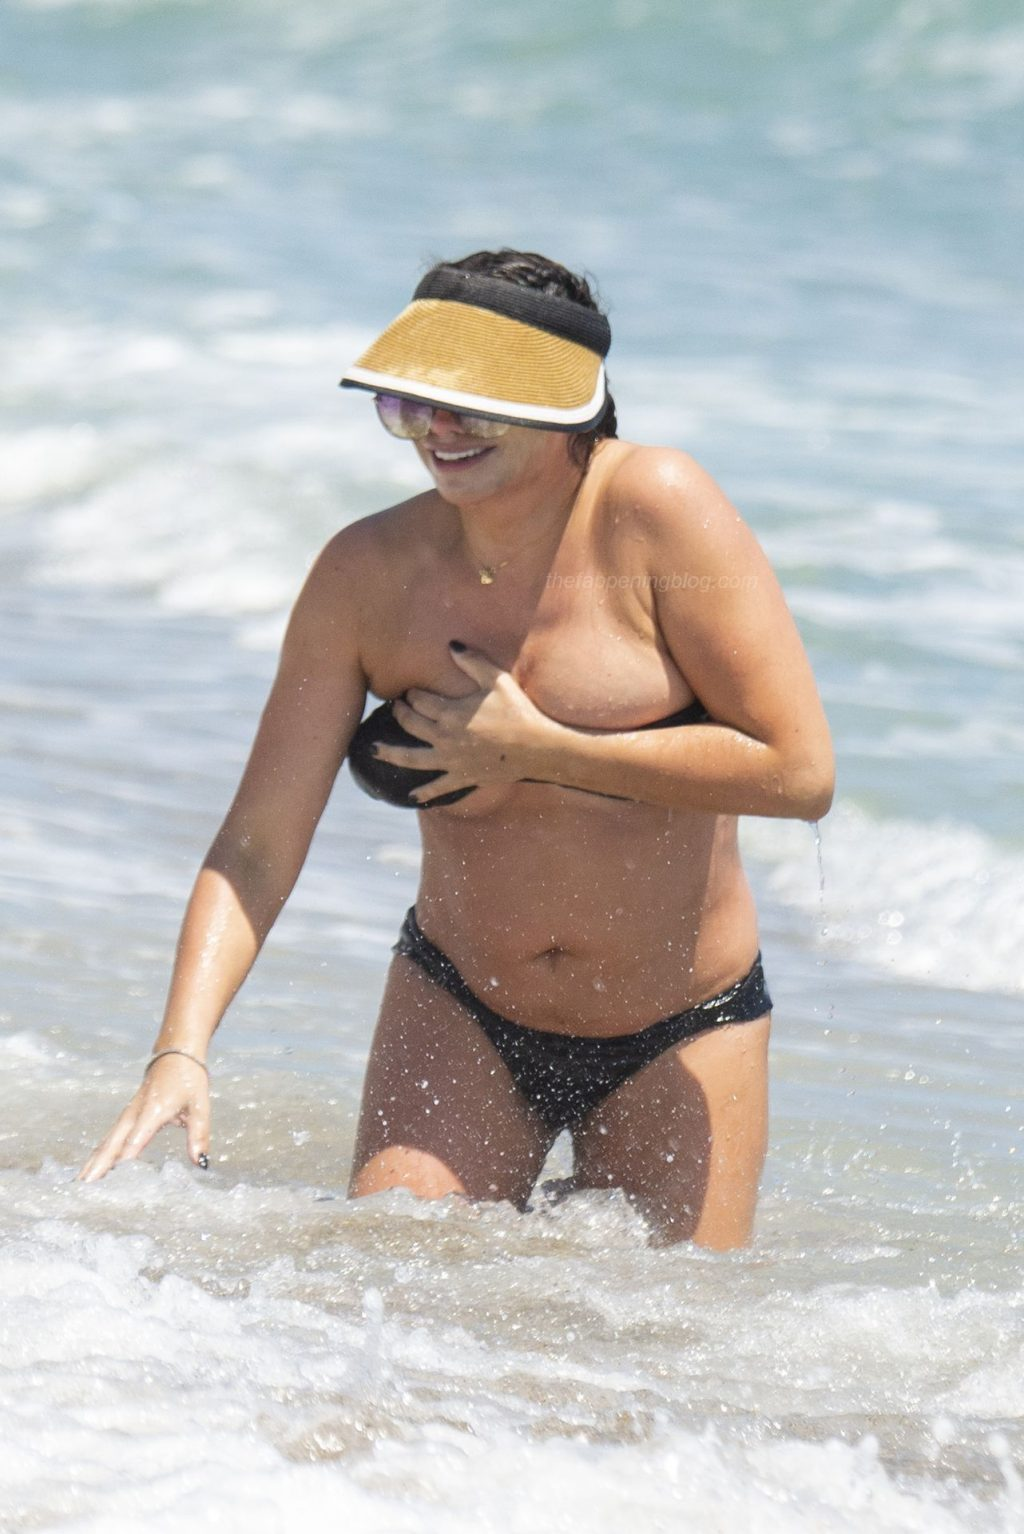 Stacey Giggs Struggles to Keep Her Bikini in Place as She Splashes in the Marbella Waves (38 Photos)